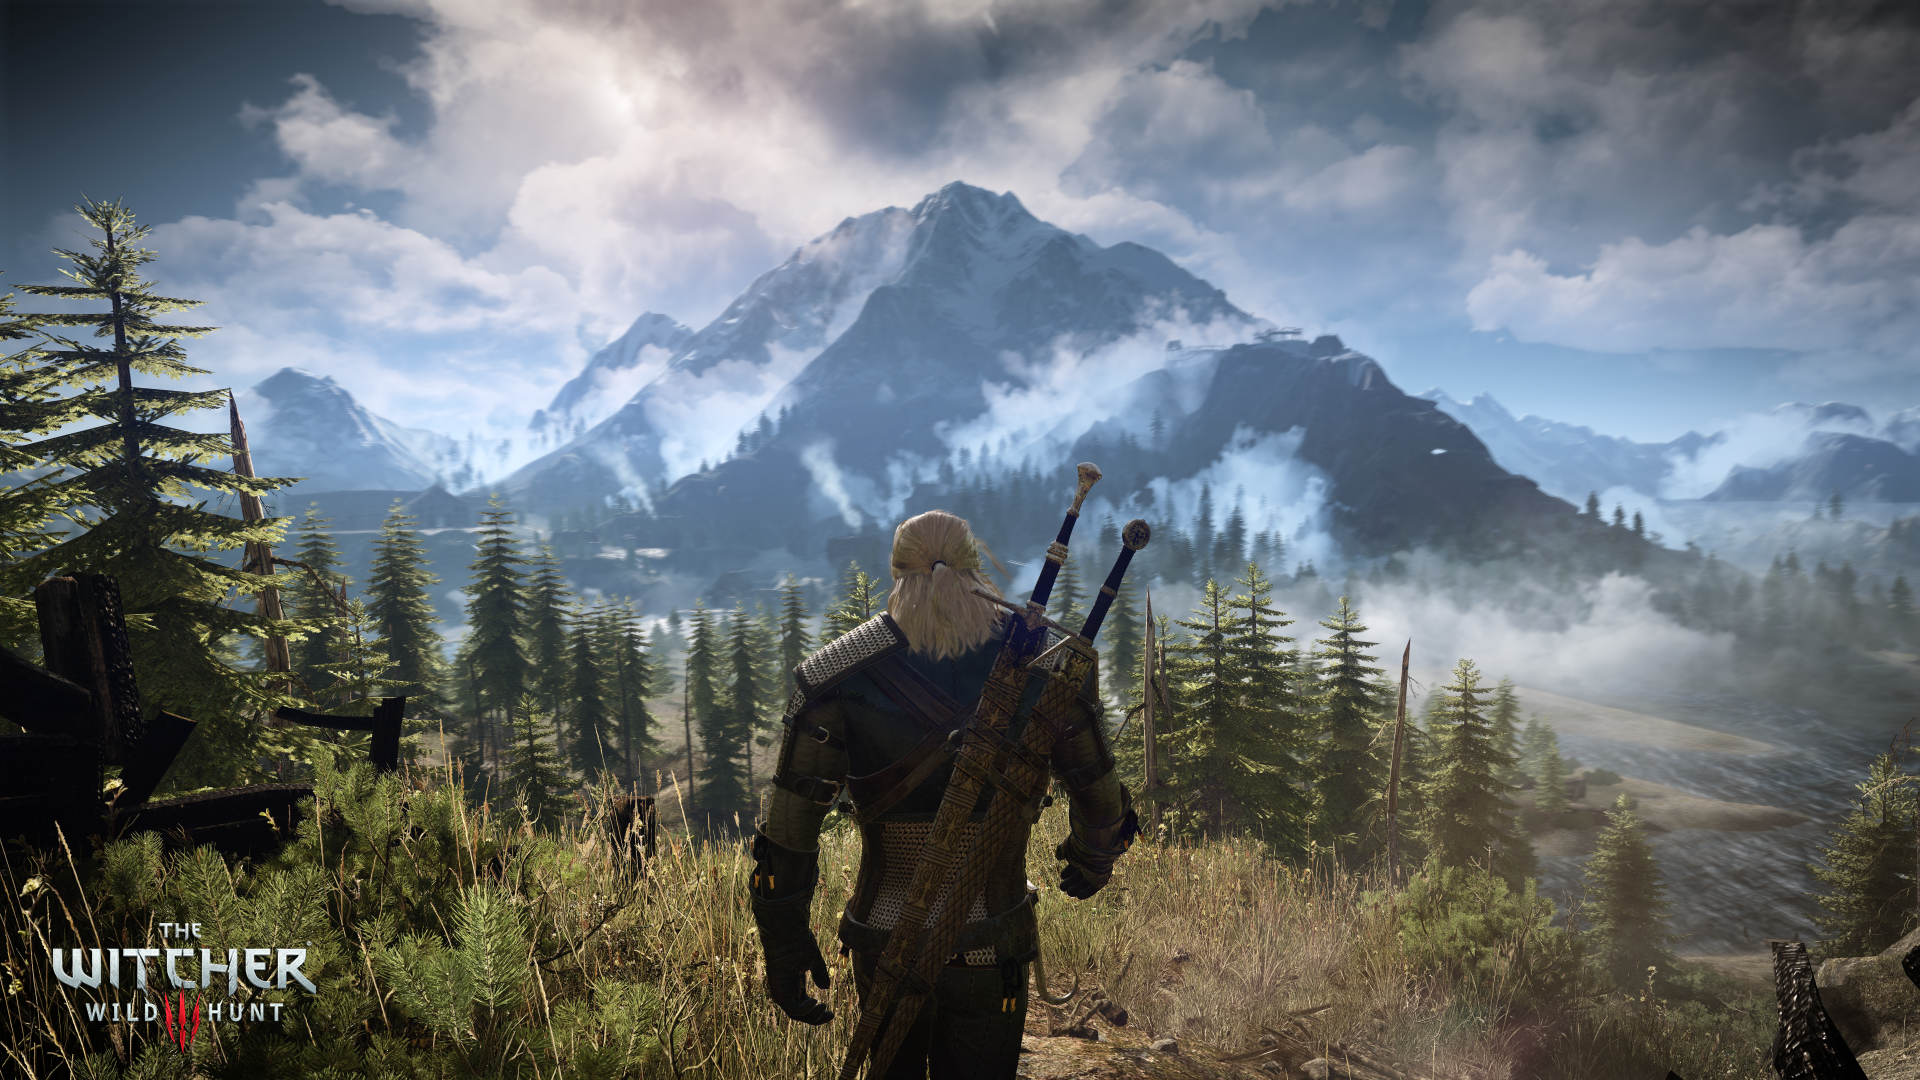 The Witcher 3 Game Amazing Hd Wallpapers All Hd Wallpapers